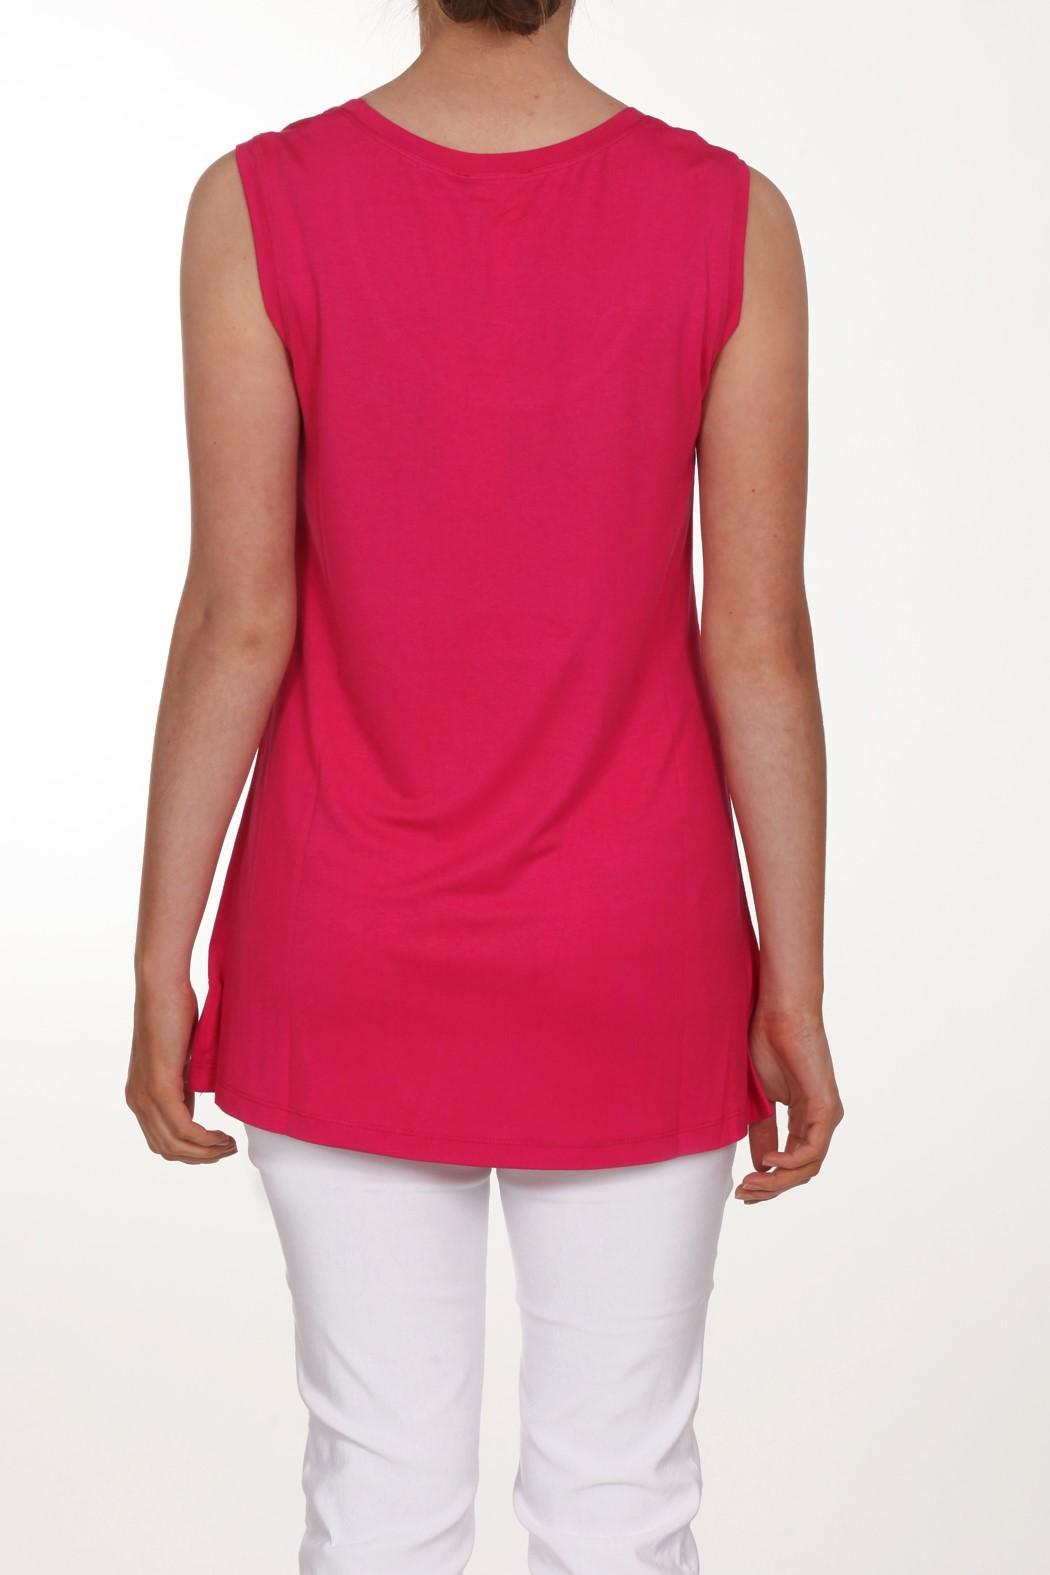 Dolcezza Pink Sleeveless Top - Front Full Image